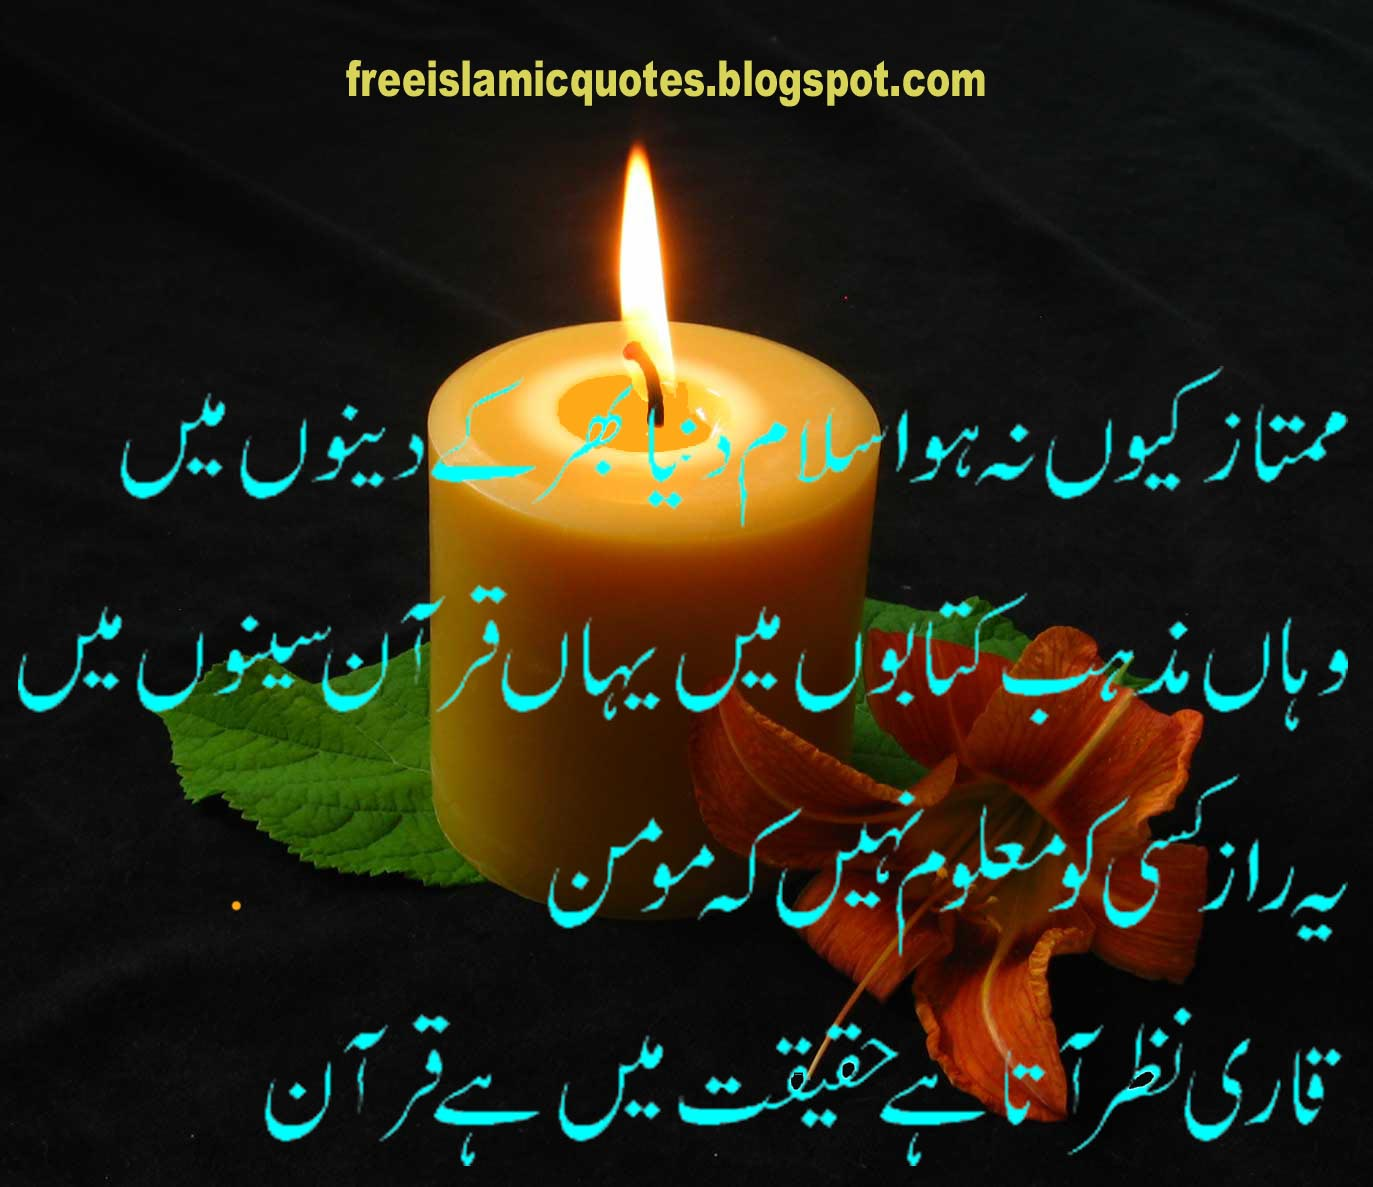 Inspirational Islamic Poetry Wallpaper Free